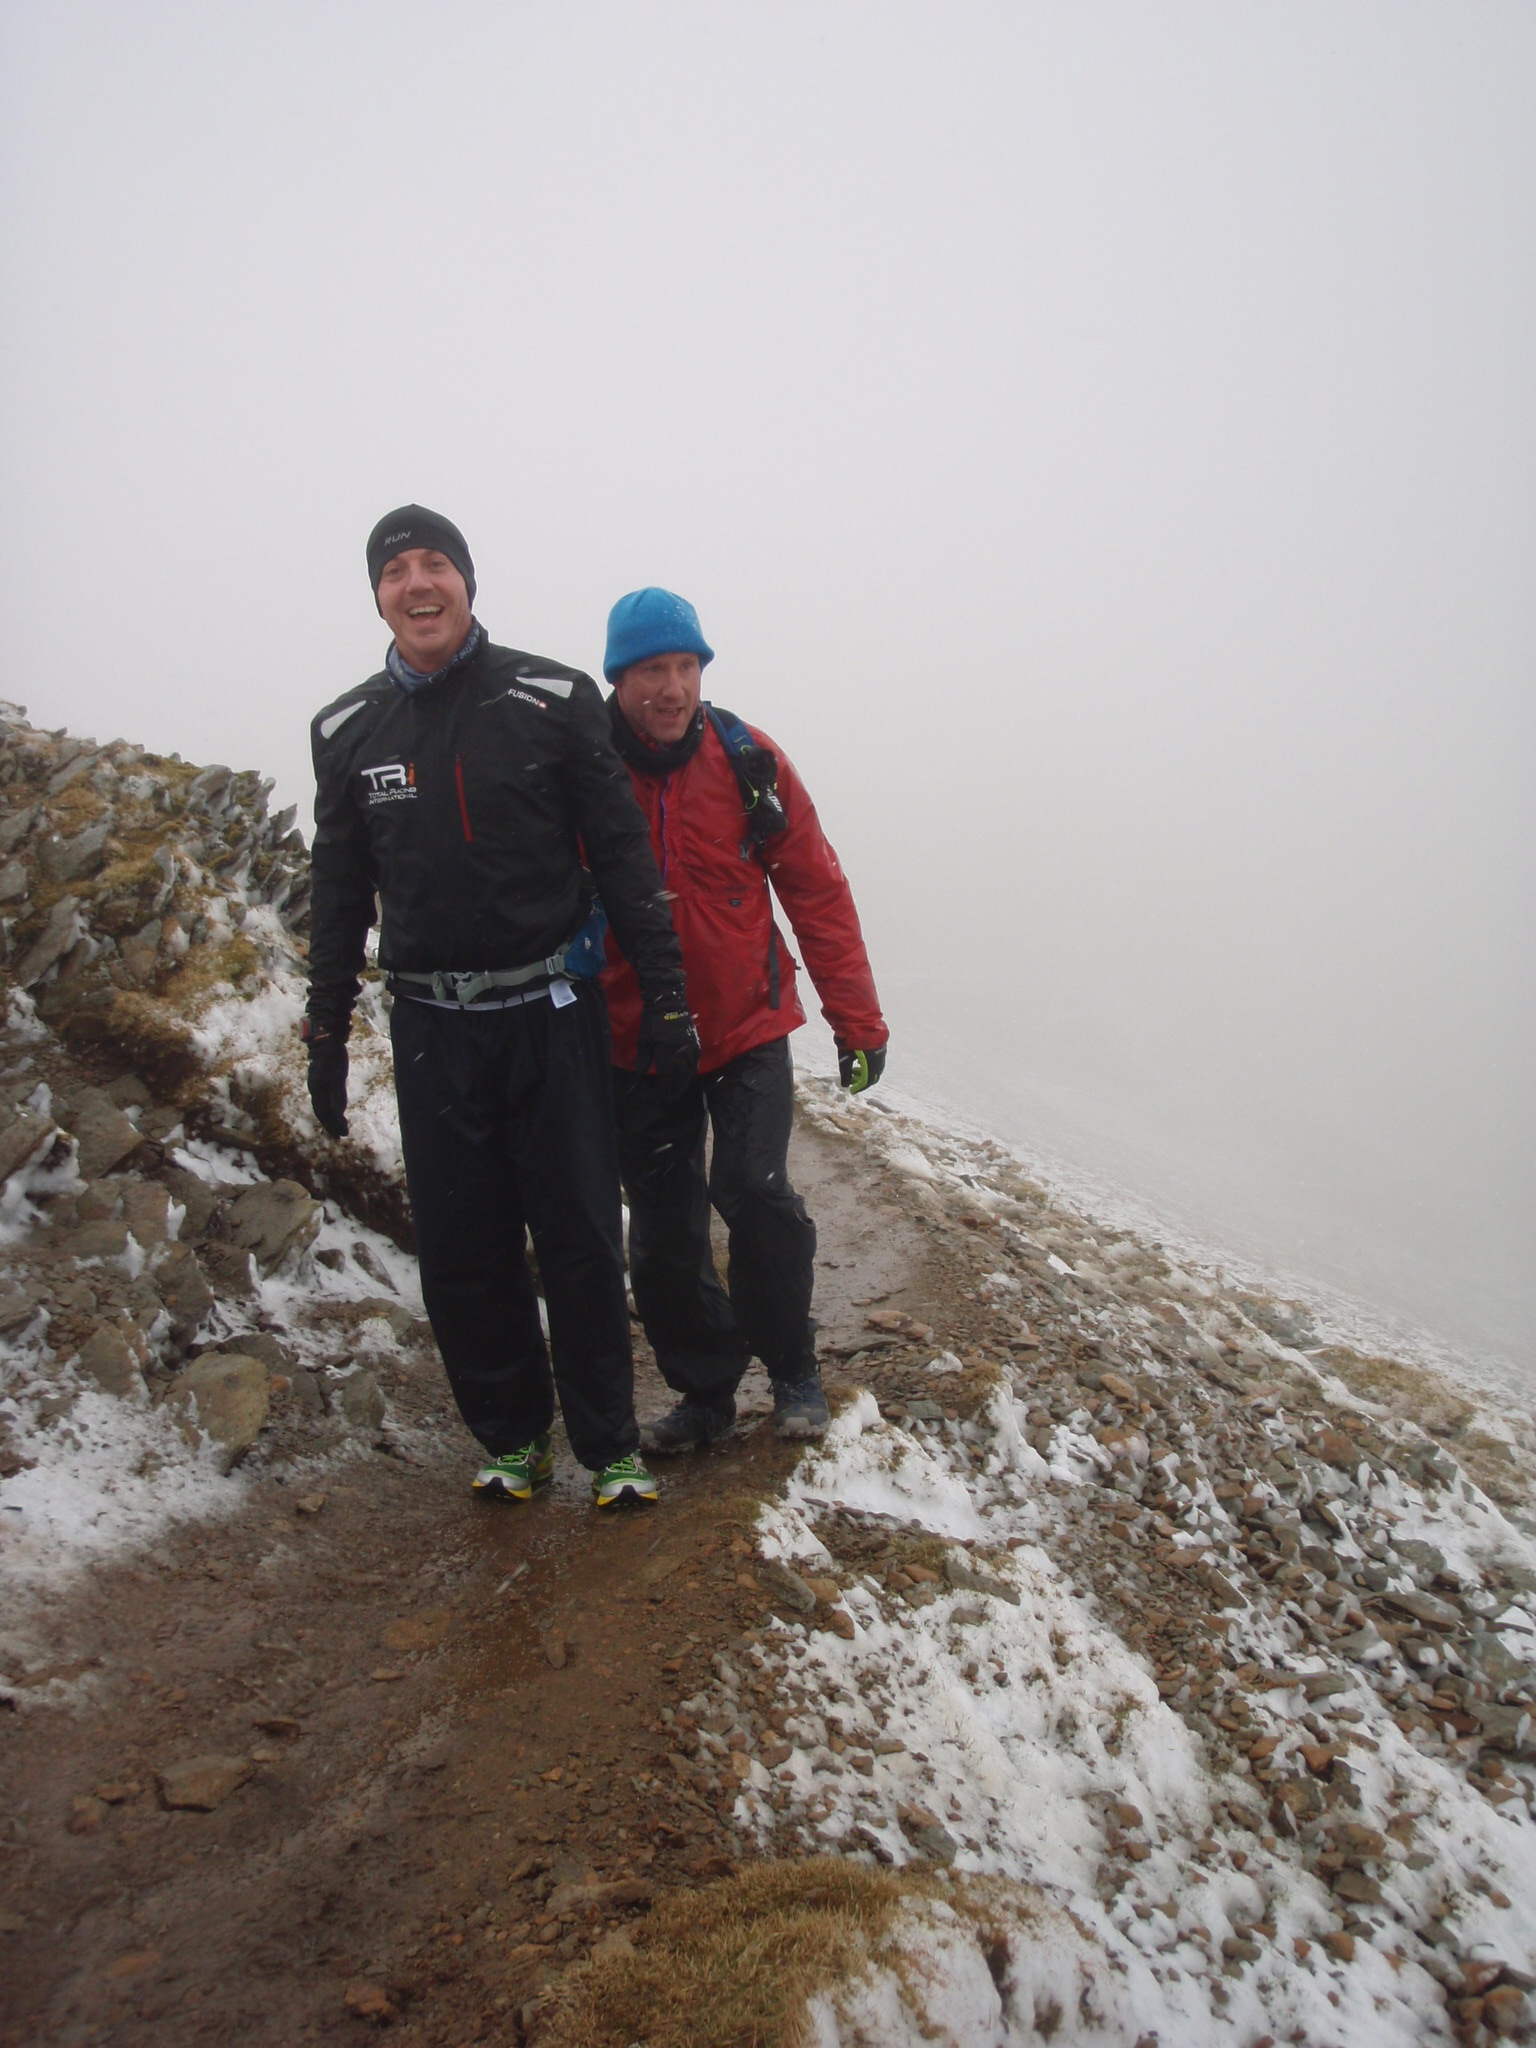 Tough conditions on Helvellyn